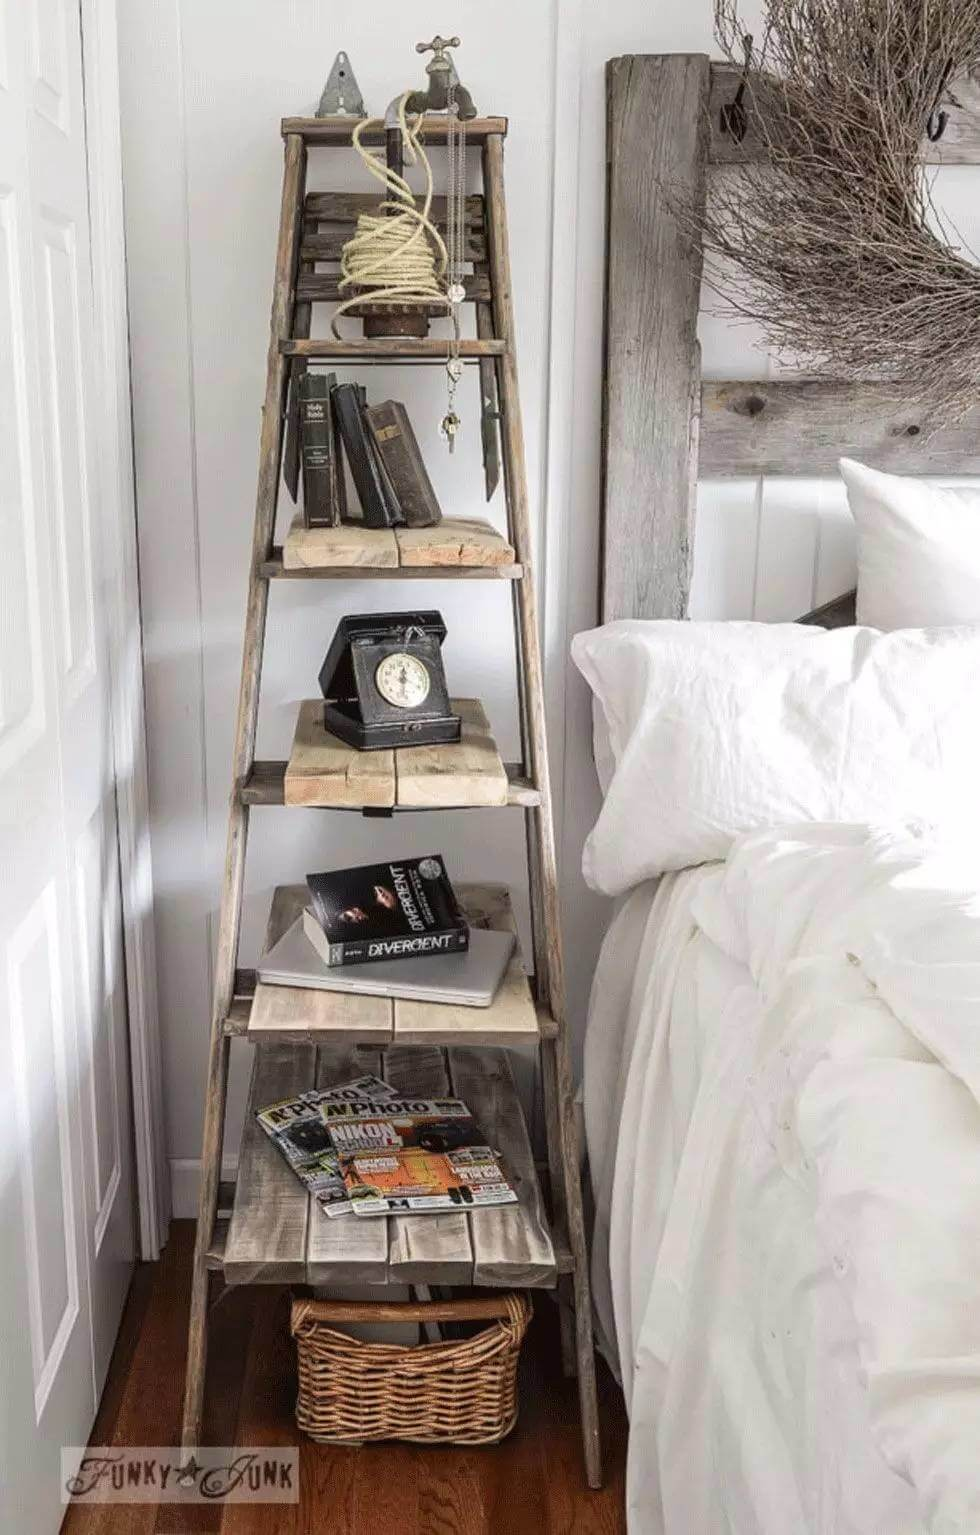 Bon 17. Upcycled Orchard Ladder Turned Nightstand